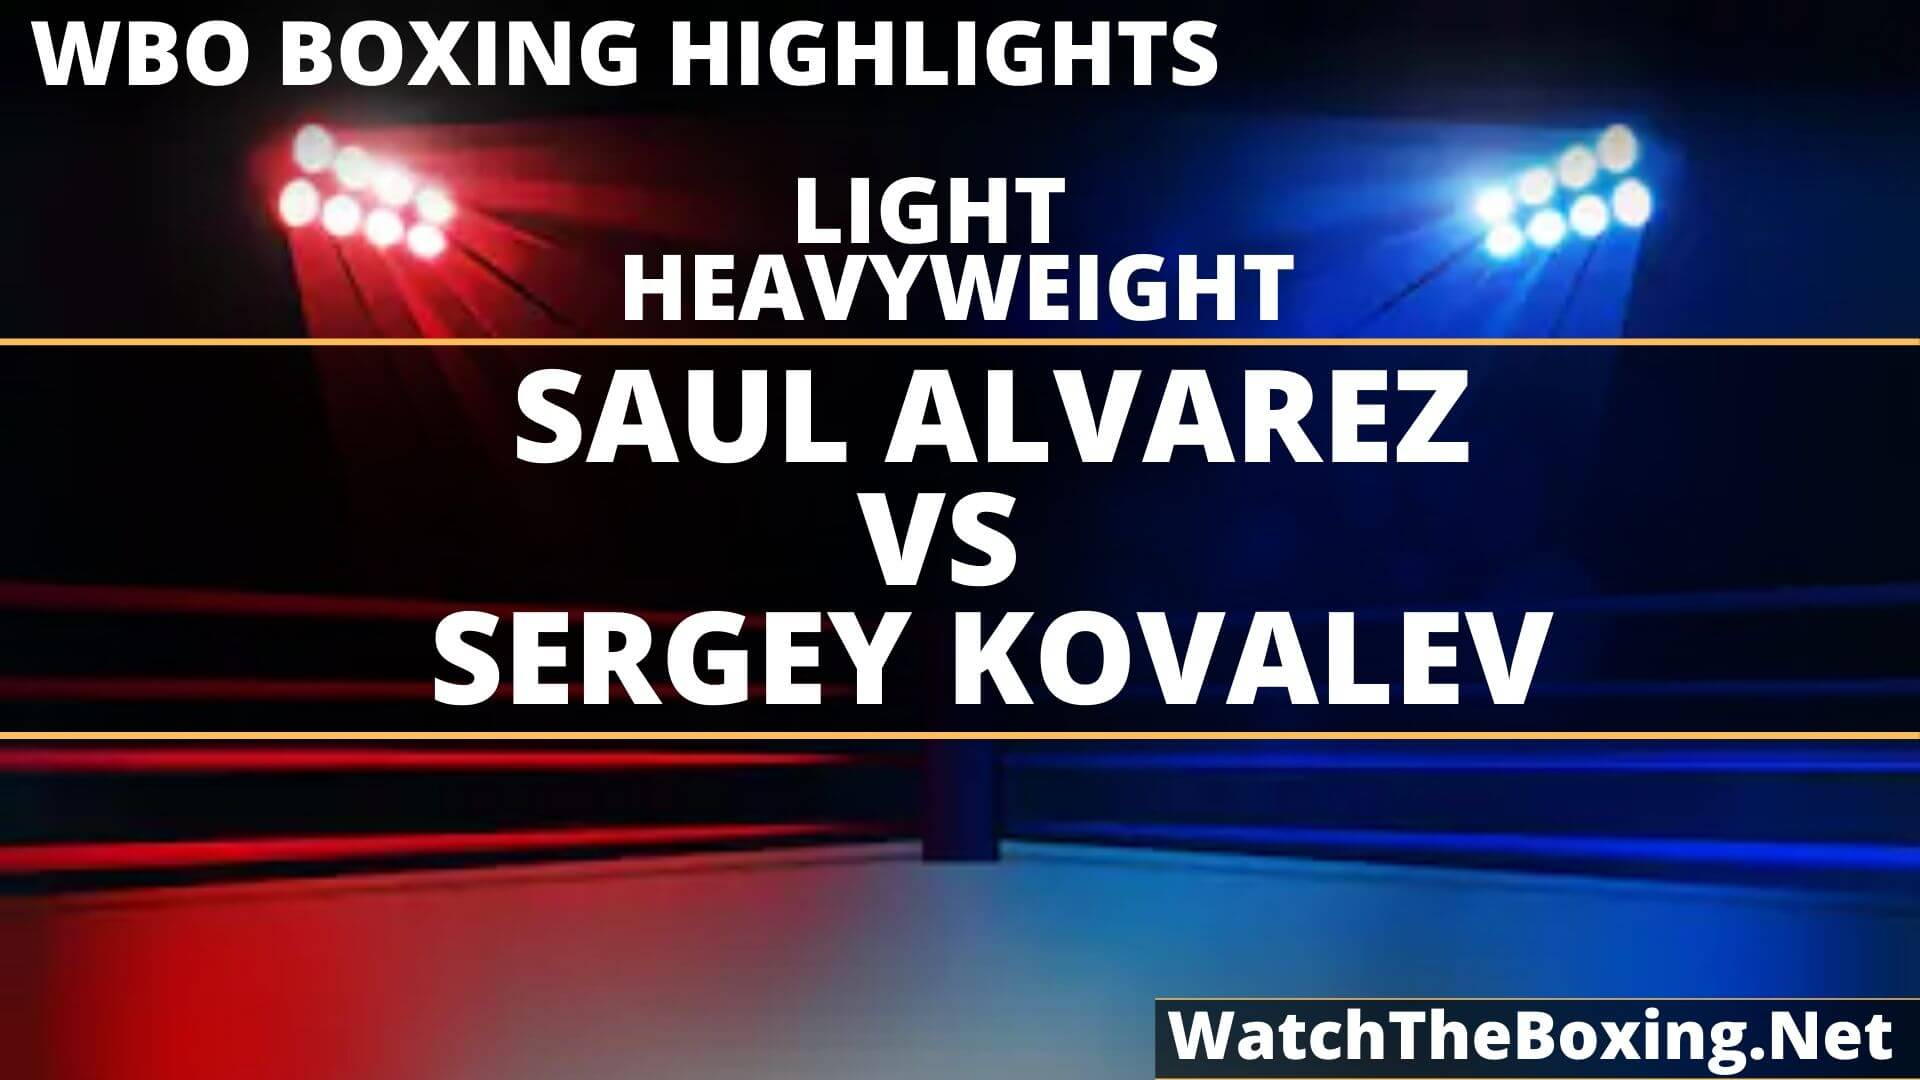 Saul Alvarez Vs Sergey Kovalev Highlights 2019